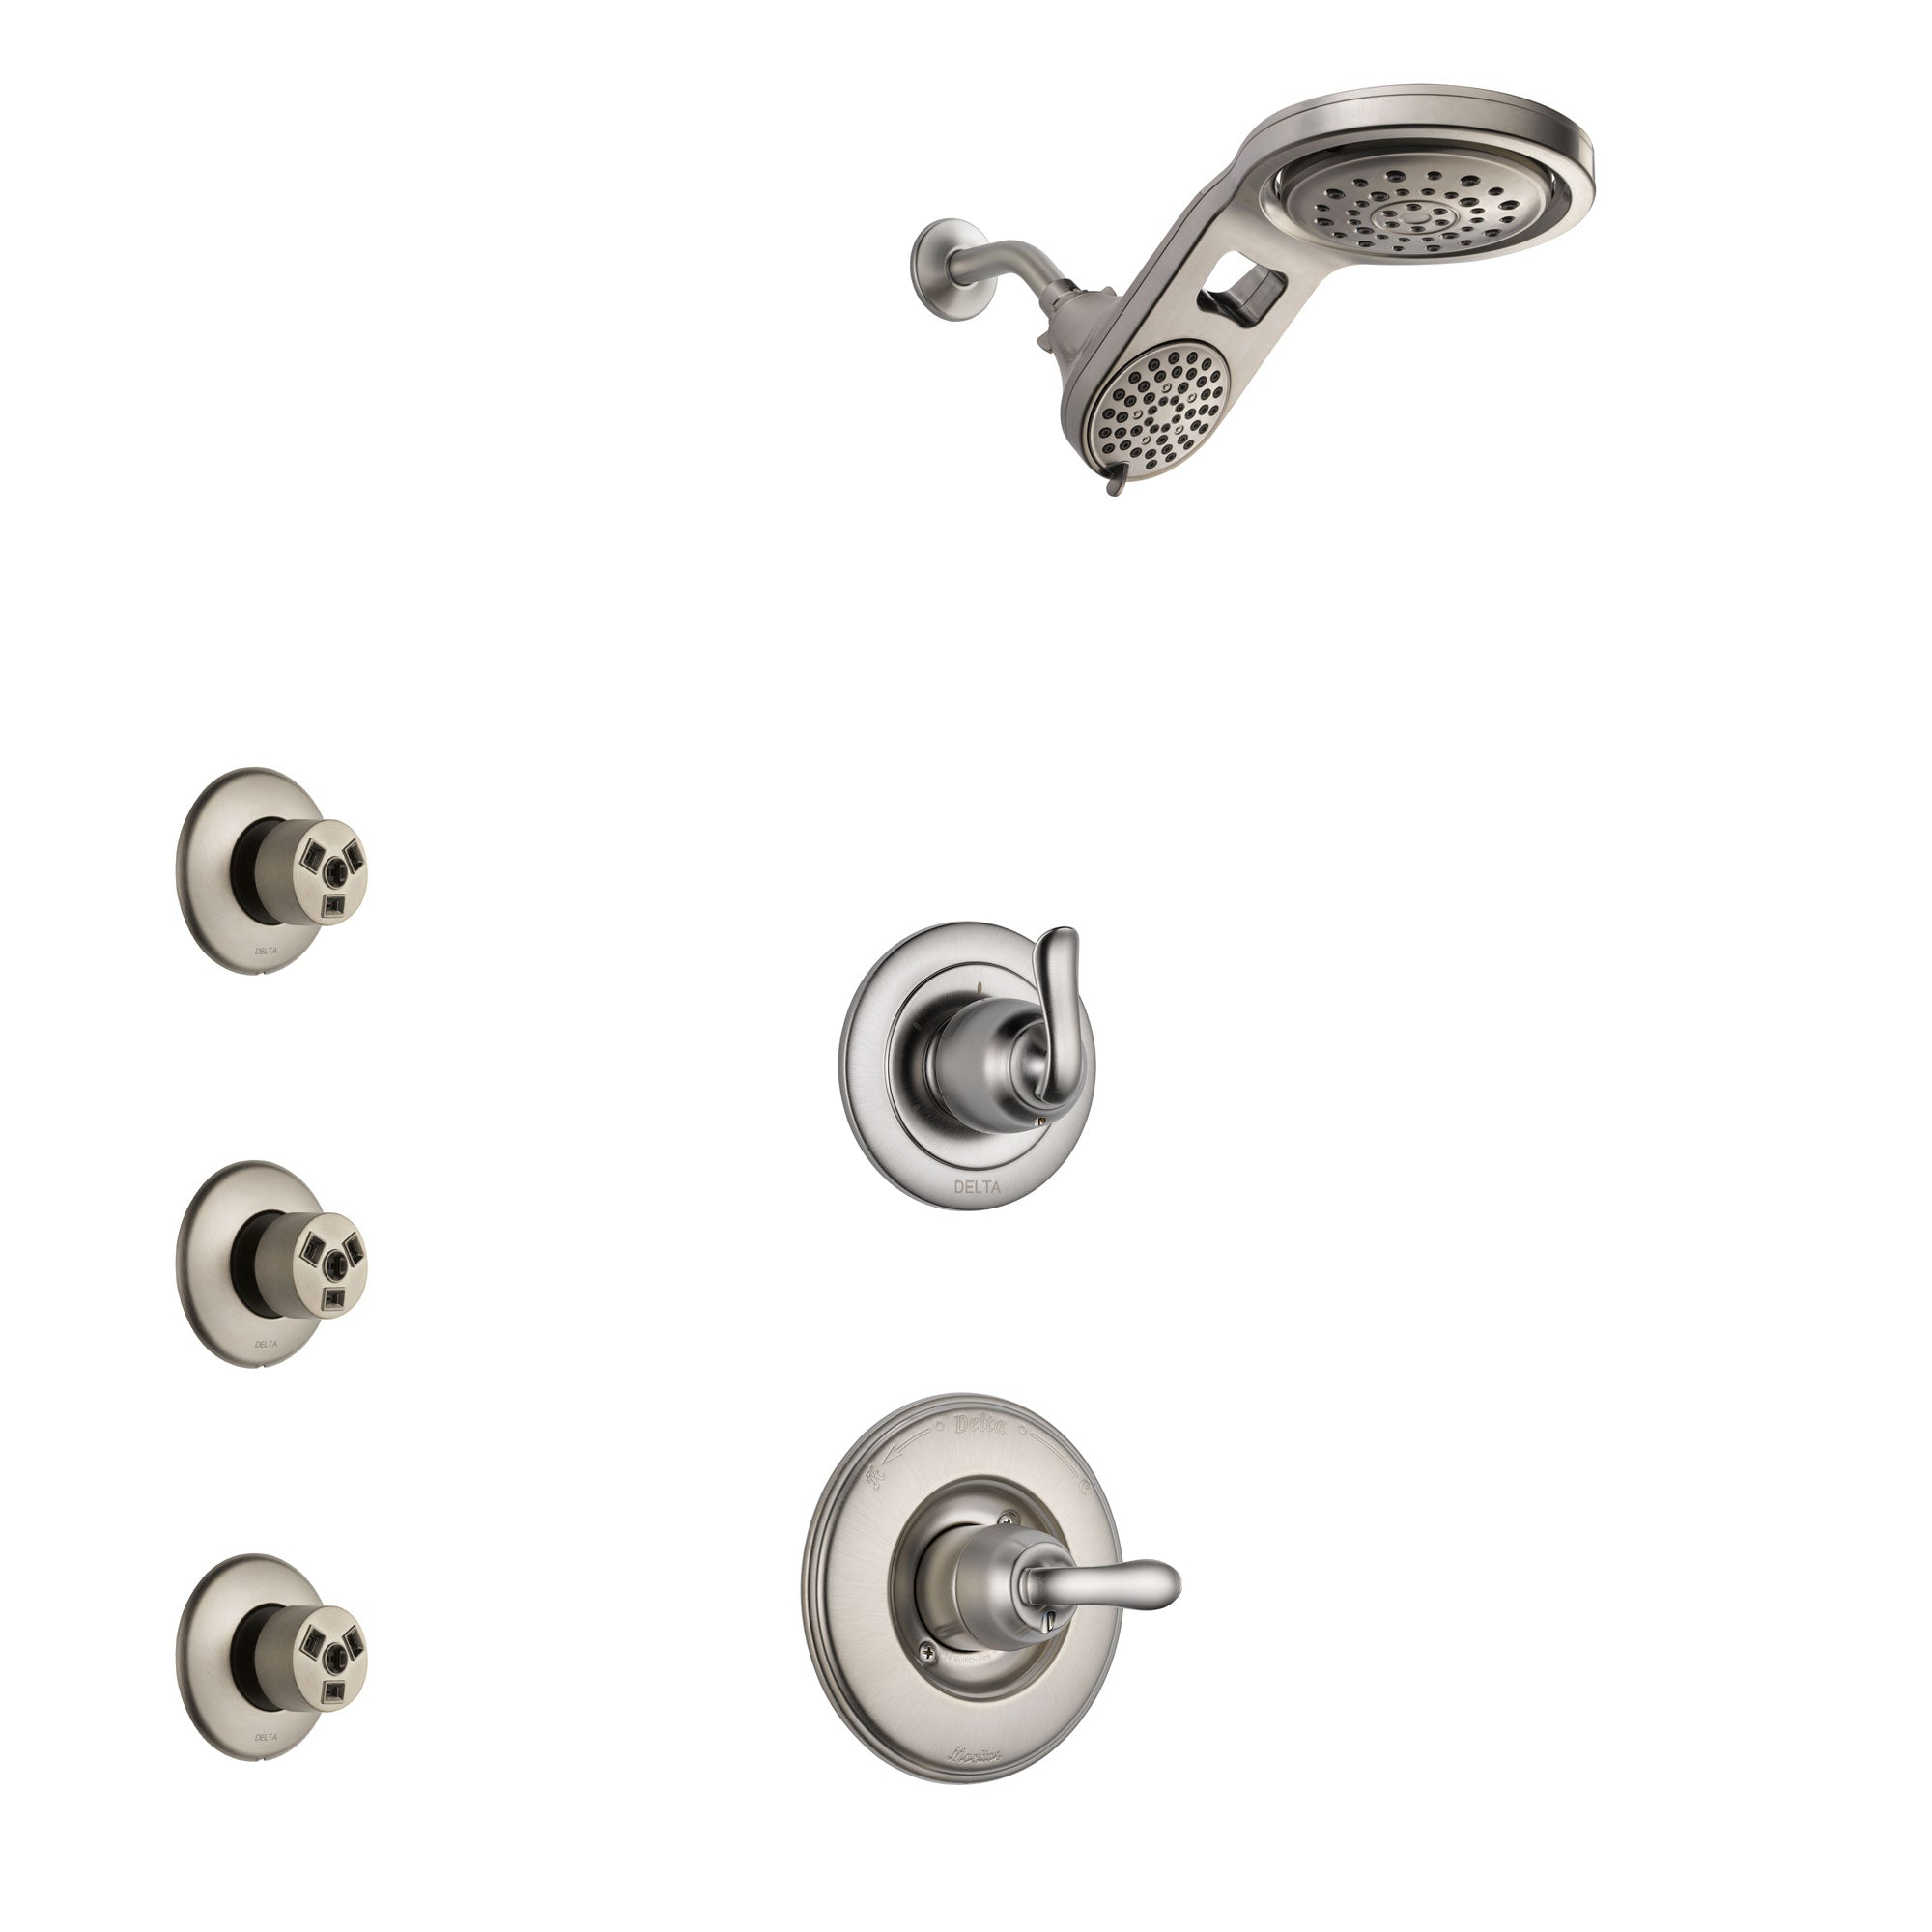 Delta Linden Stainless Steel Finish Shower System with Control Handle, 3-Setting Diverter, Dual Showerhead, and 3 Body Sprays SS1494SS6